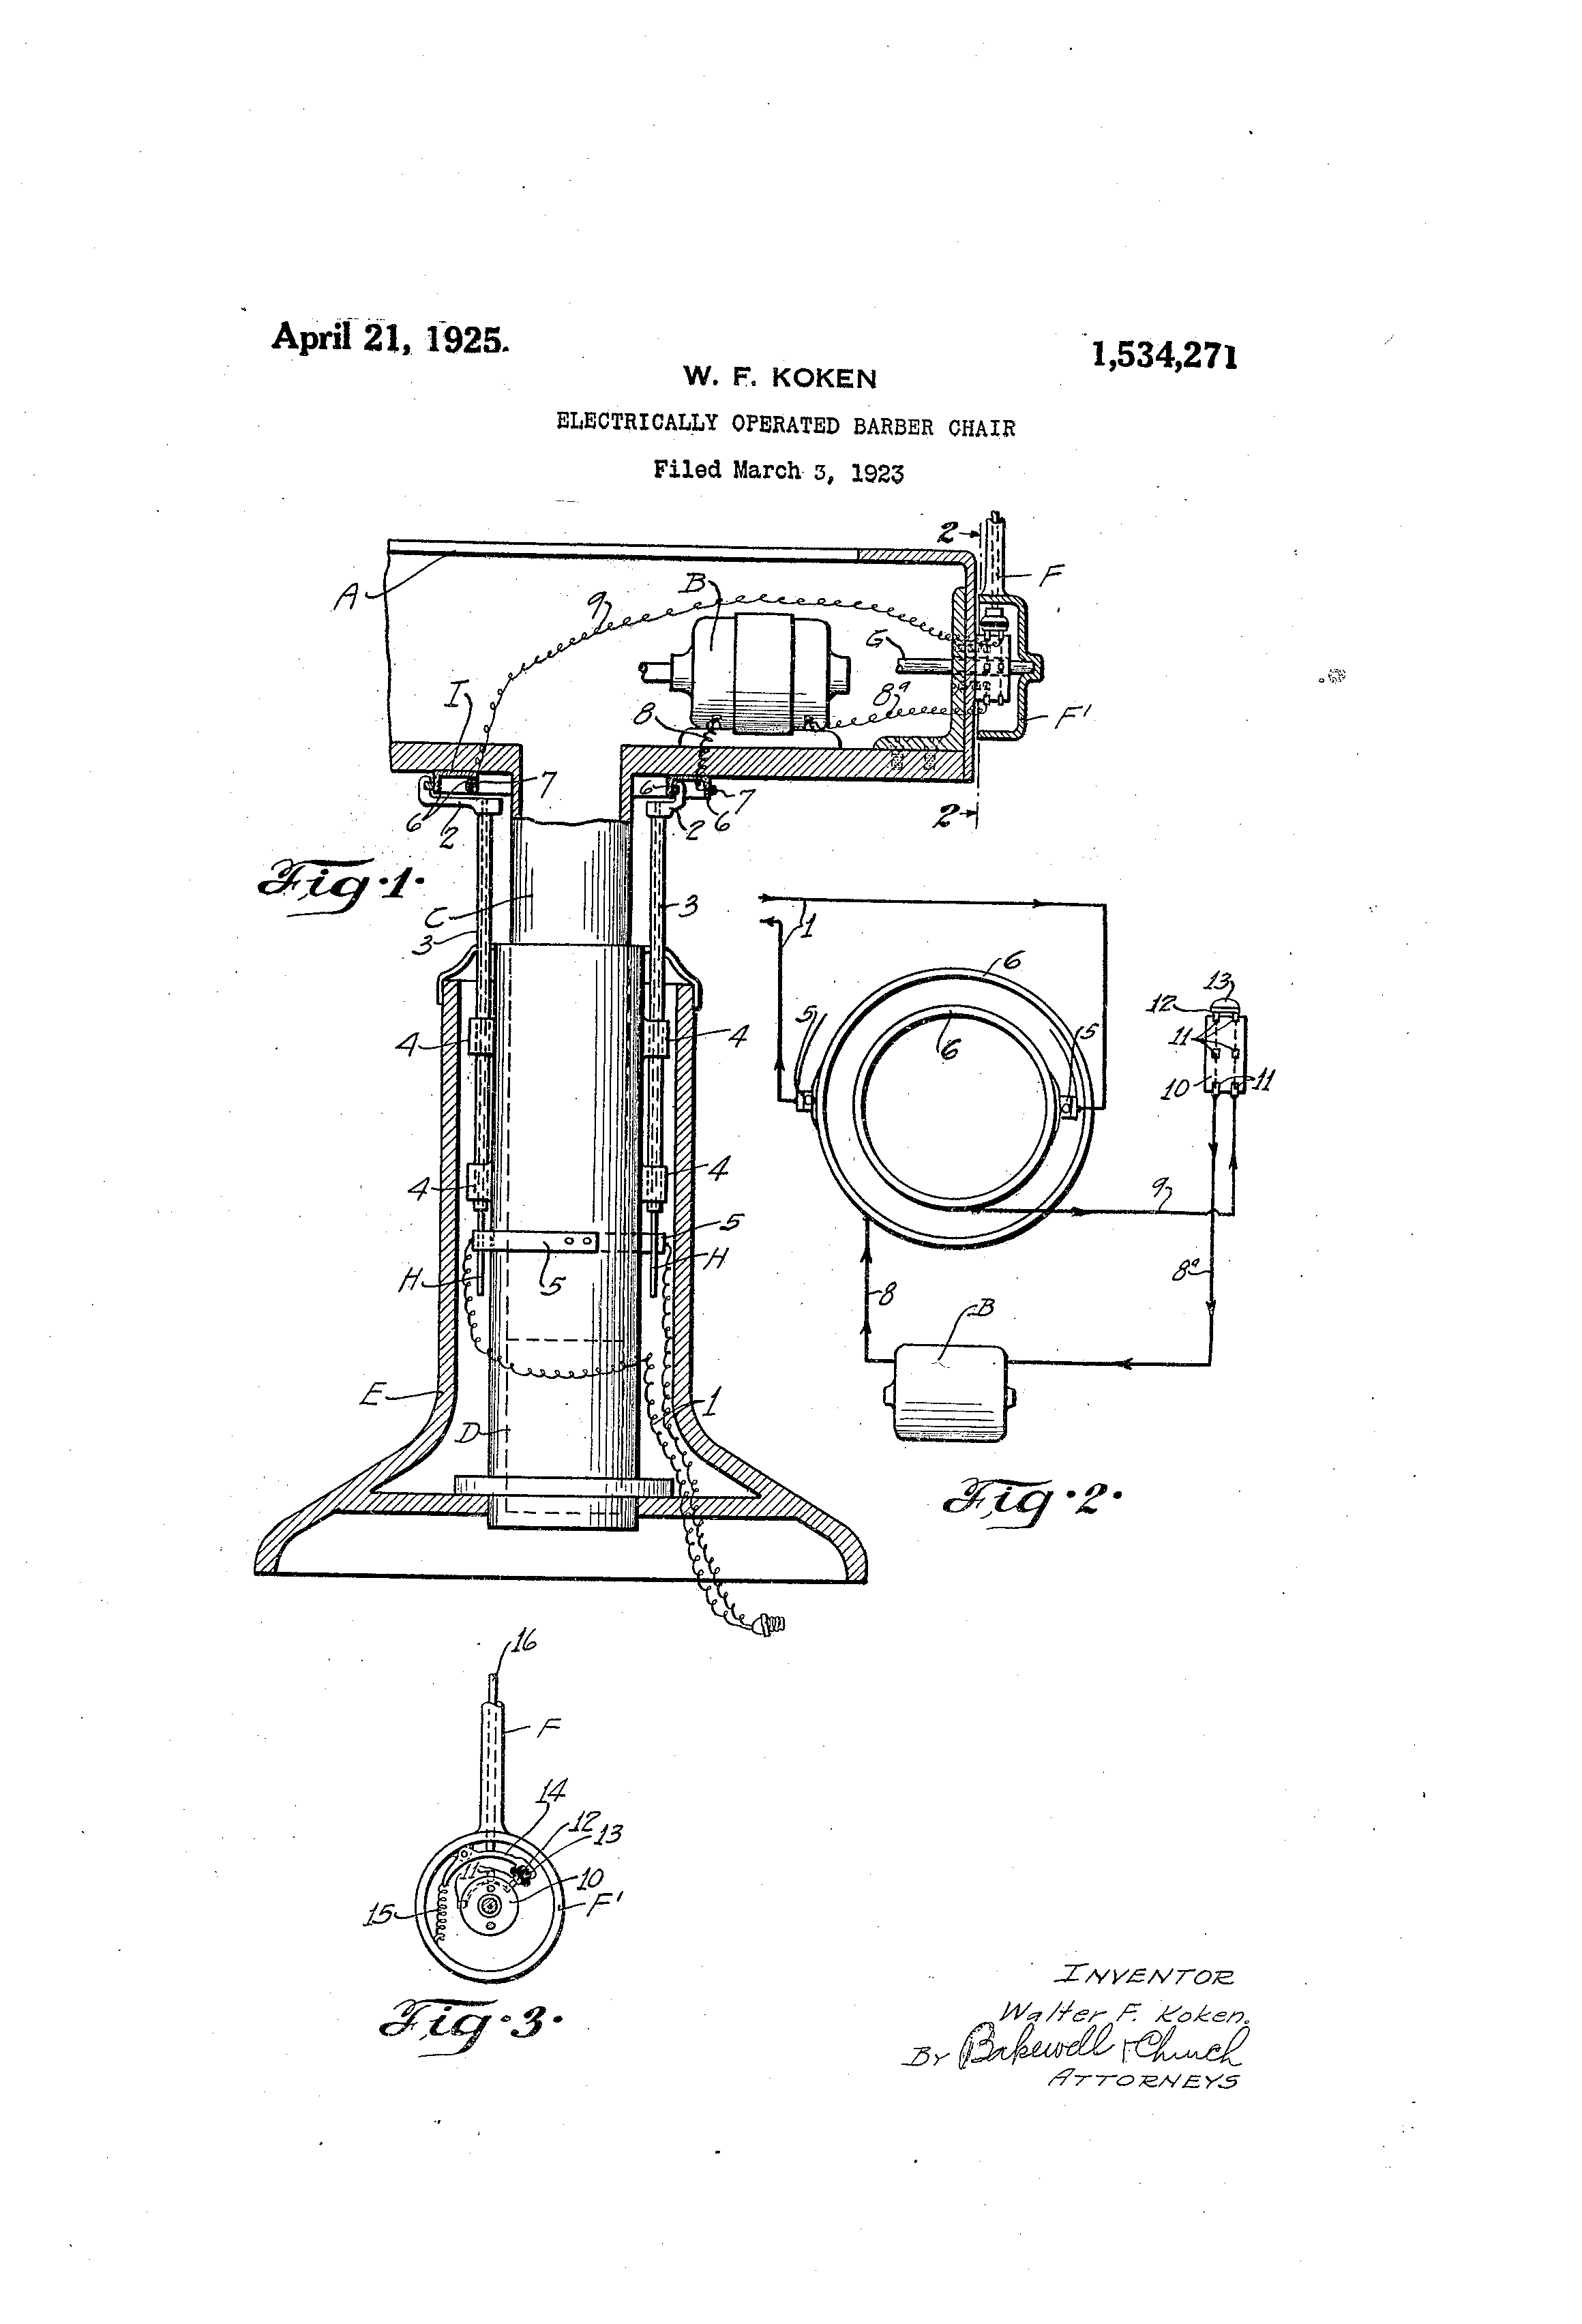 Koken barber chair serial number - Patent Drawing